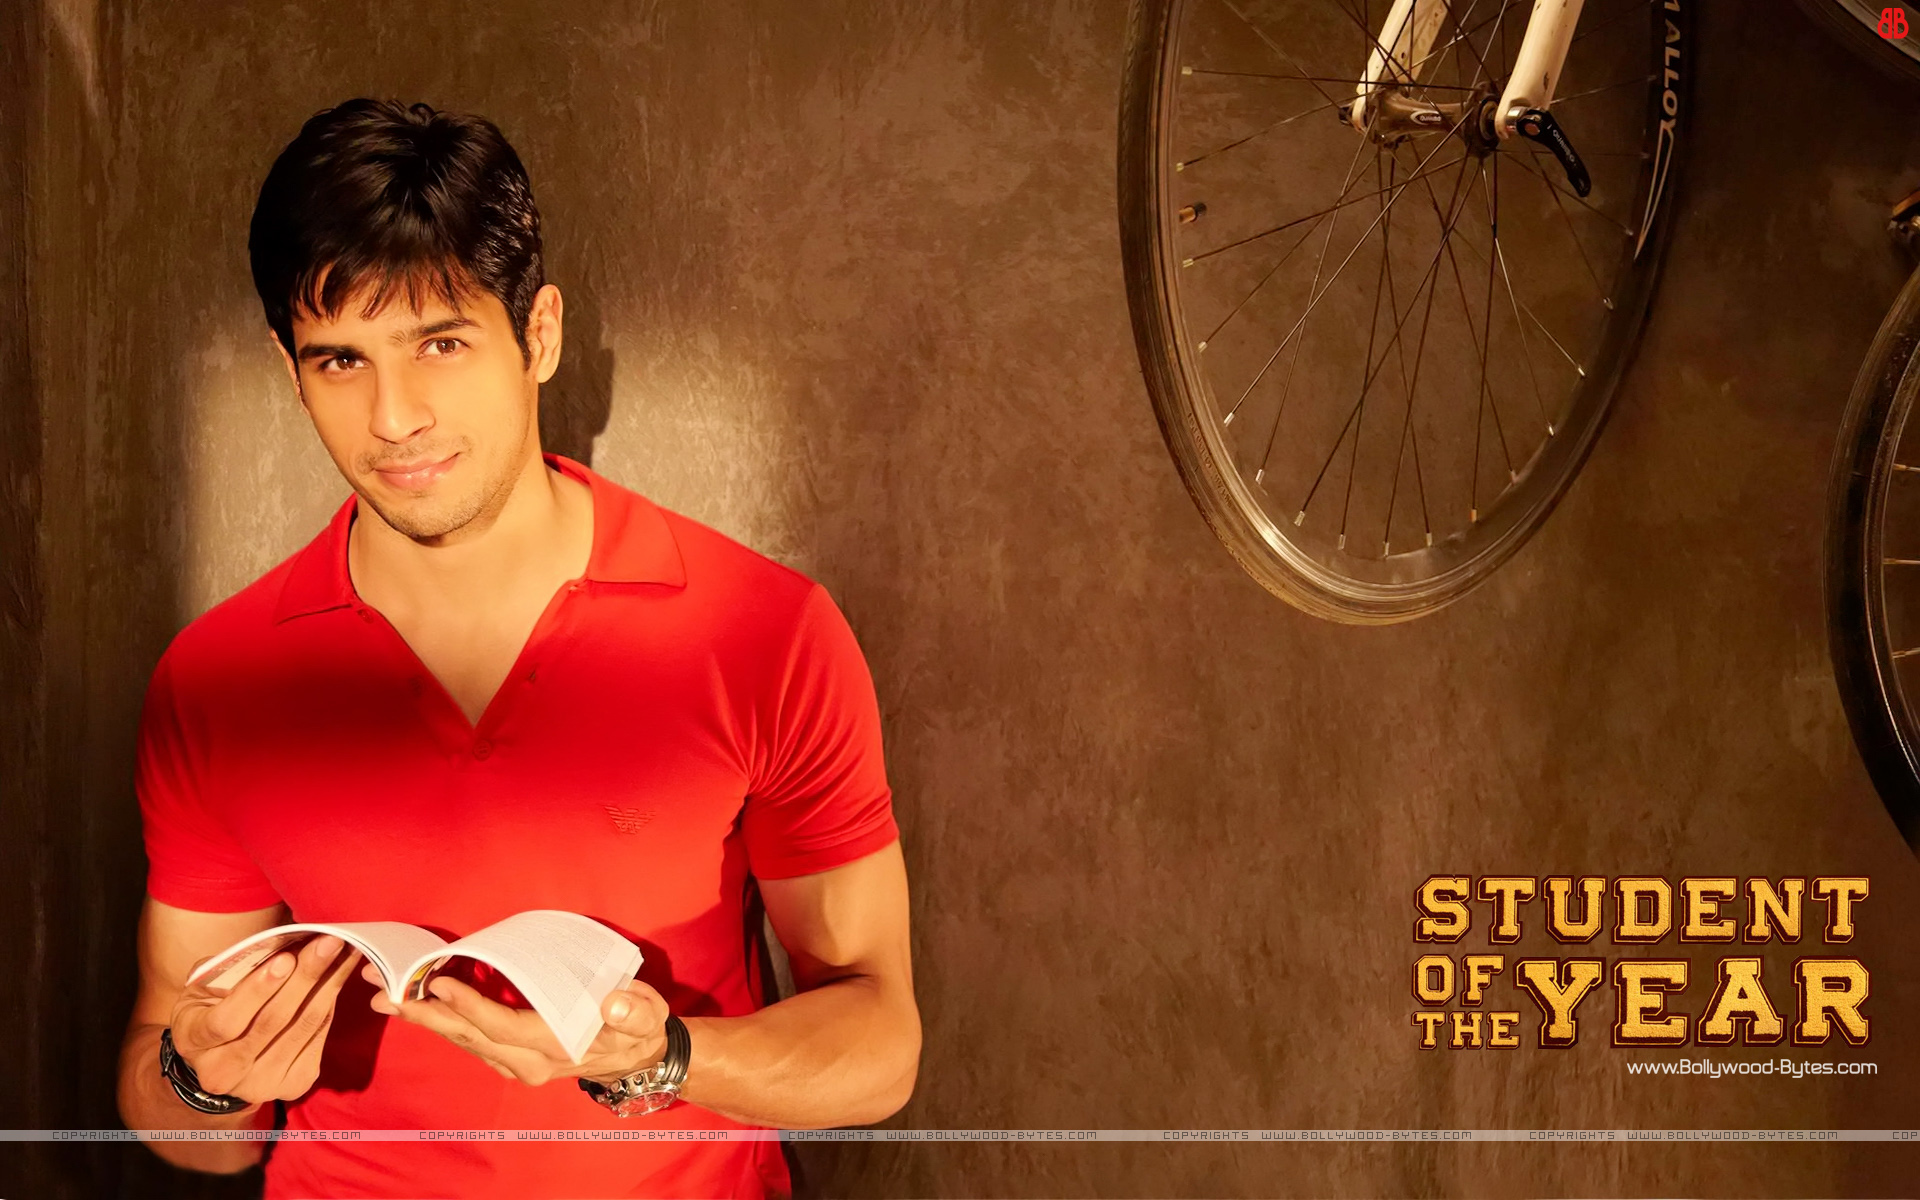 http://2.bp.blogspot.com/-WRaxeLqw9-0/UGtDfFgFfVI/AAAAAAAAQds/0YNm_Xi2sMk/s1920/Student-Of-The-Year-+Hot-Sidharth-Malhotra-HD-Wallaper-36.jpg